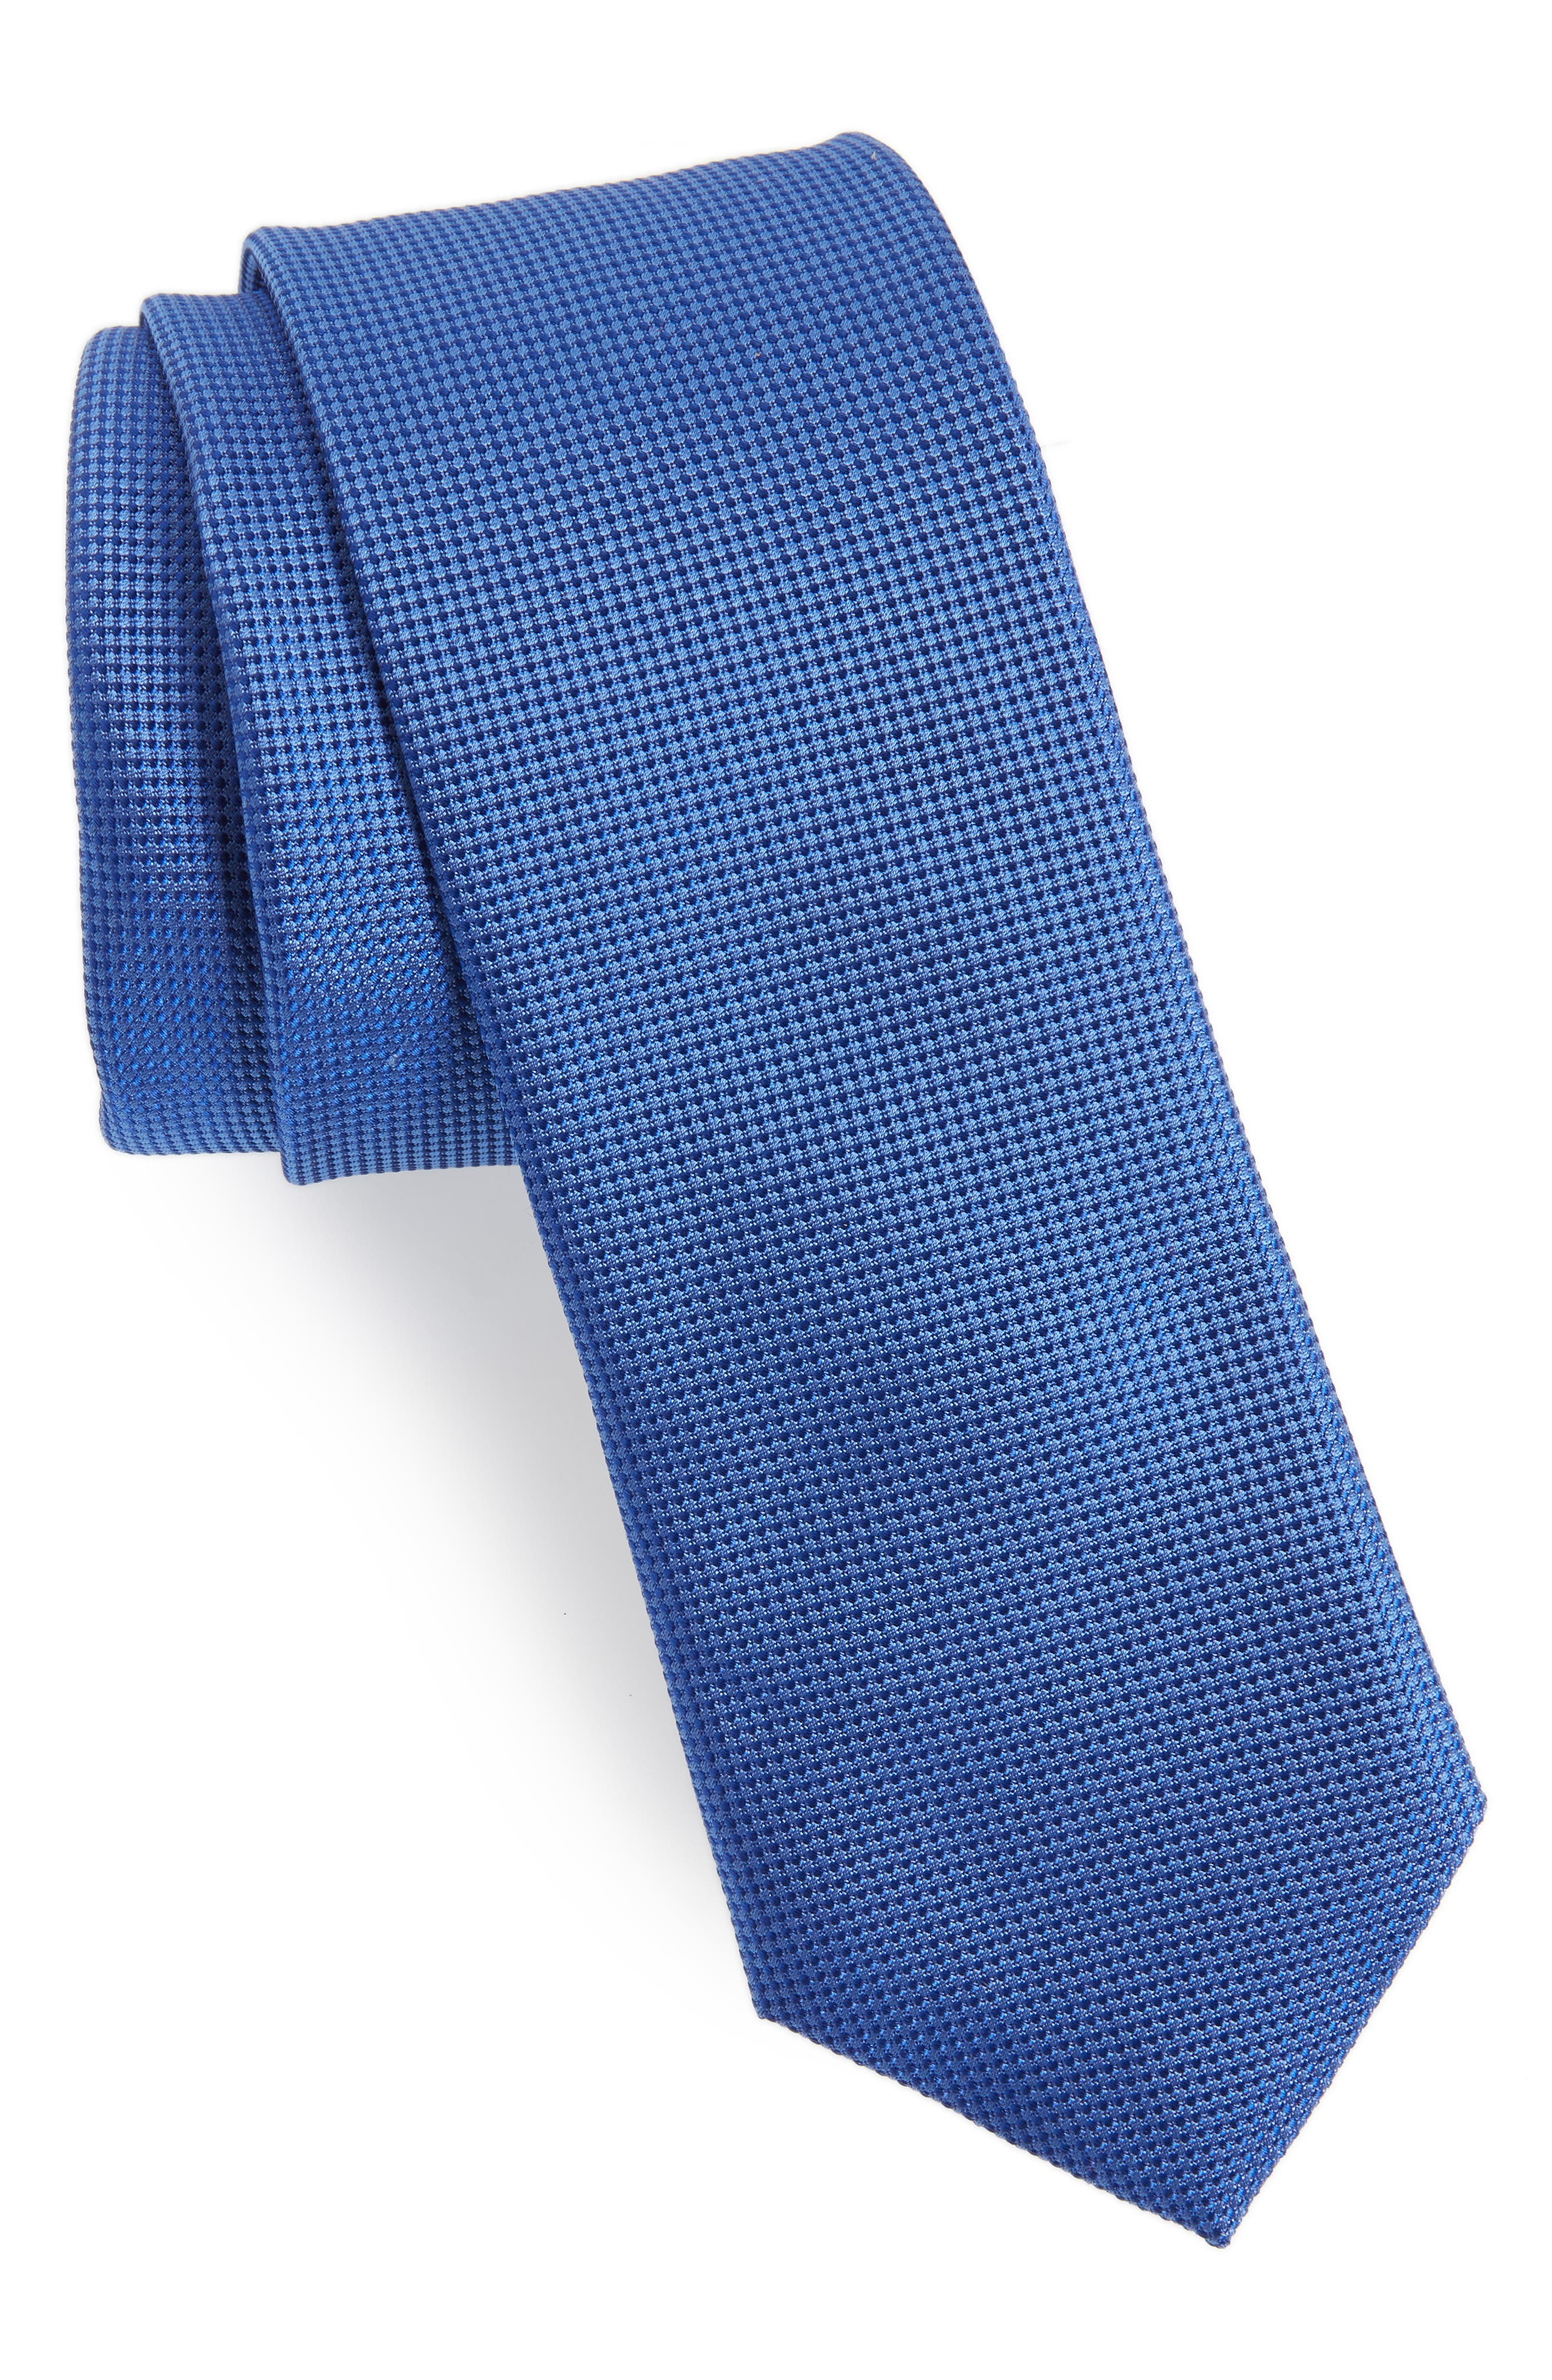 Jameswood Silk Tie,                         Main,                         color, BLUE